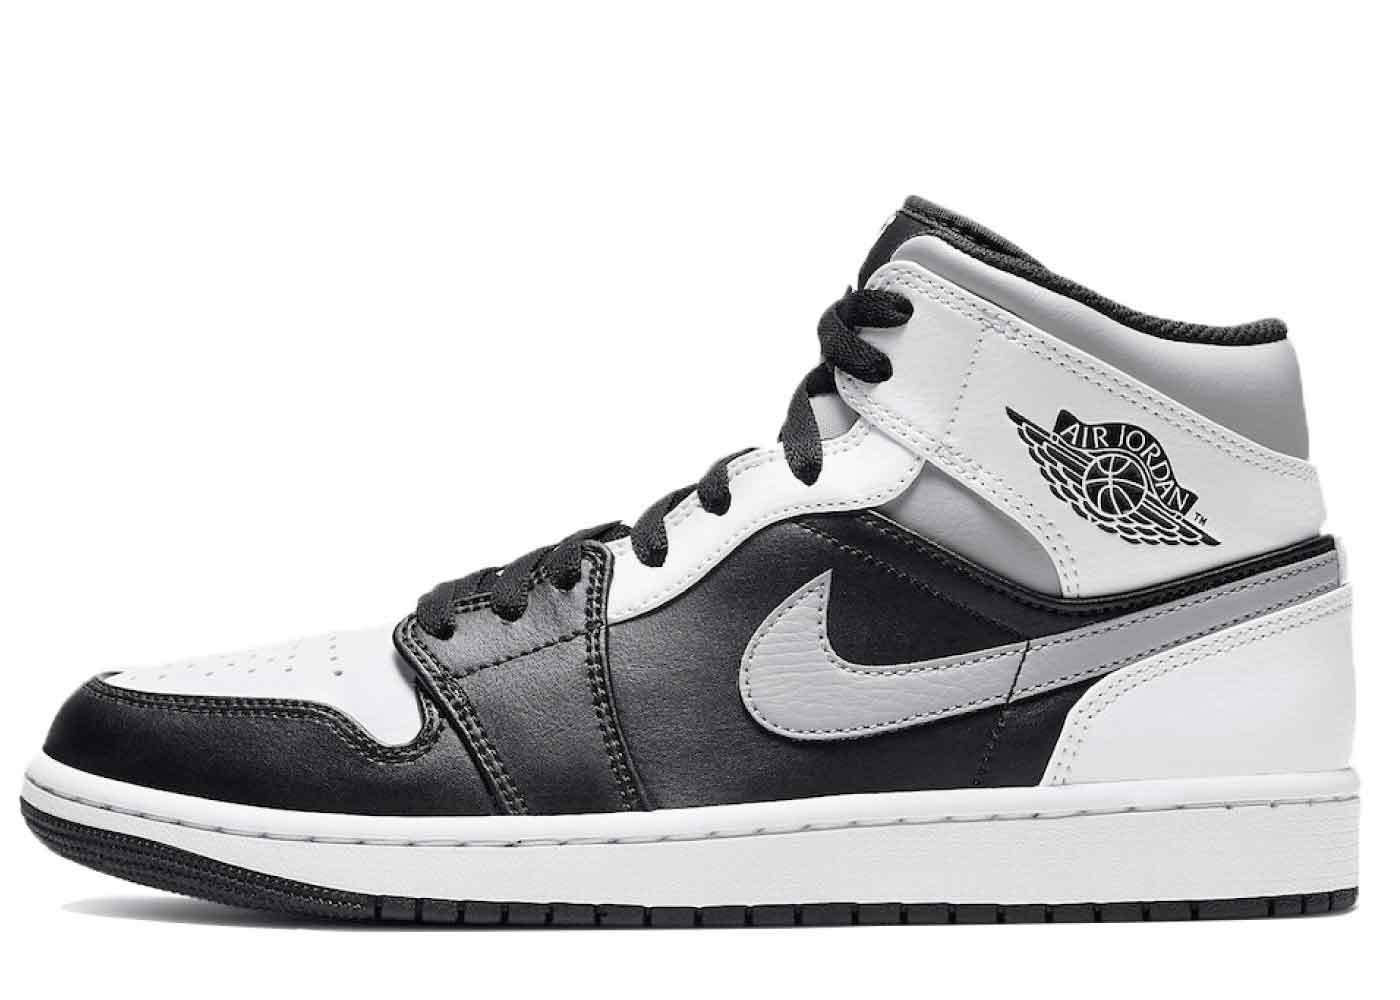 Nike Air Jordan 1 Mid White Shadowの写真